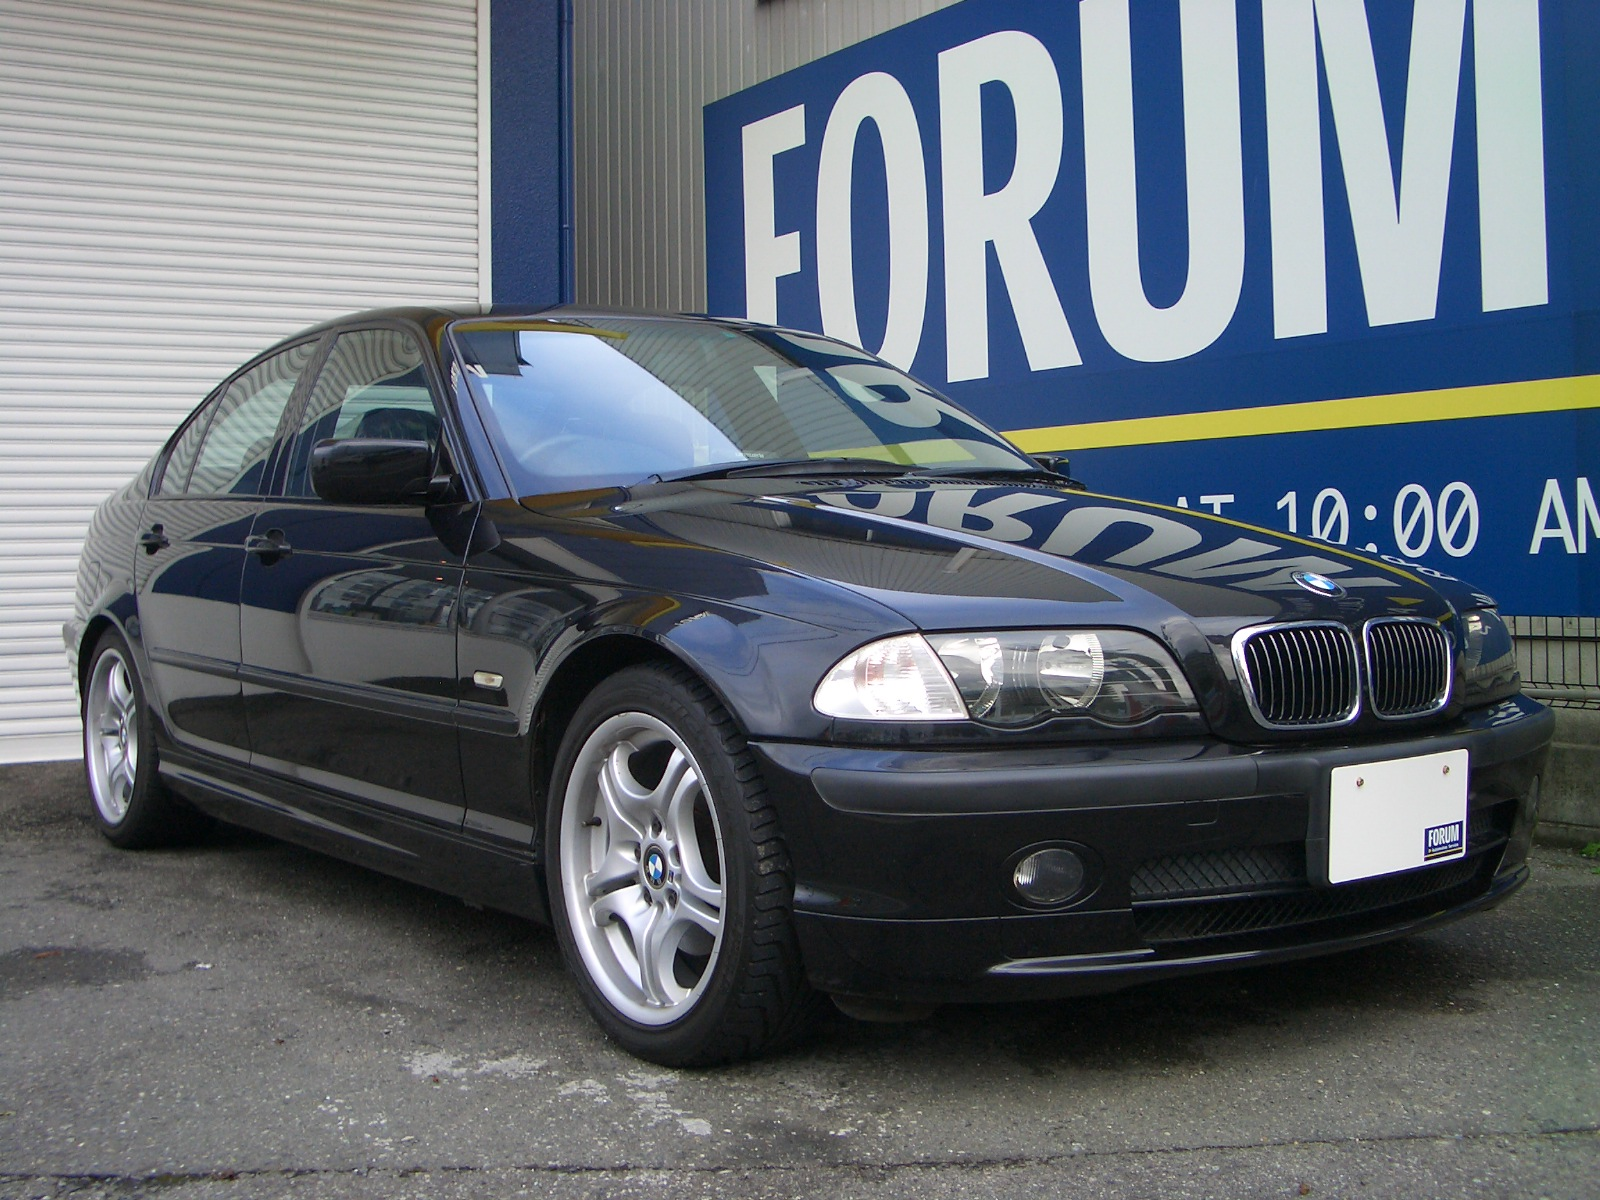 BMW <font size=4 color=red face=Impact>SOLD OUT</font> 323i